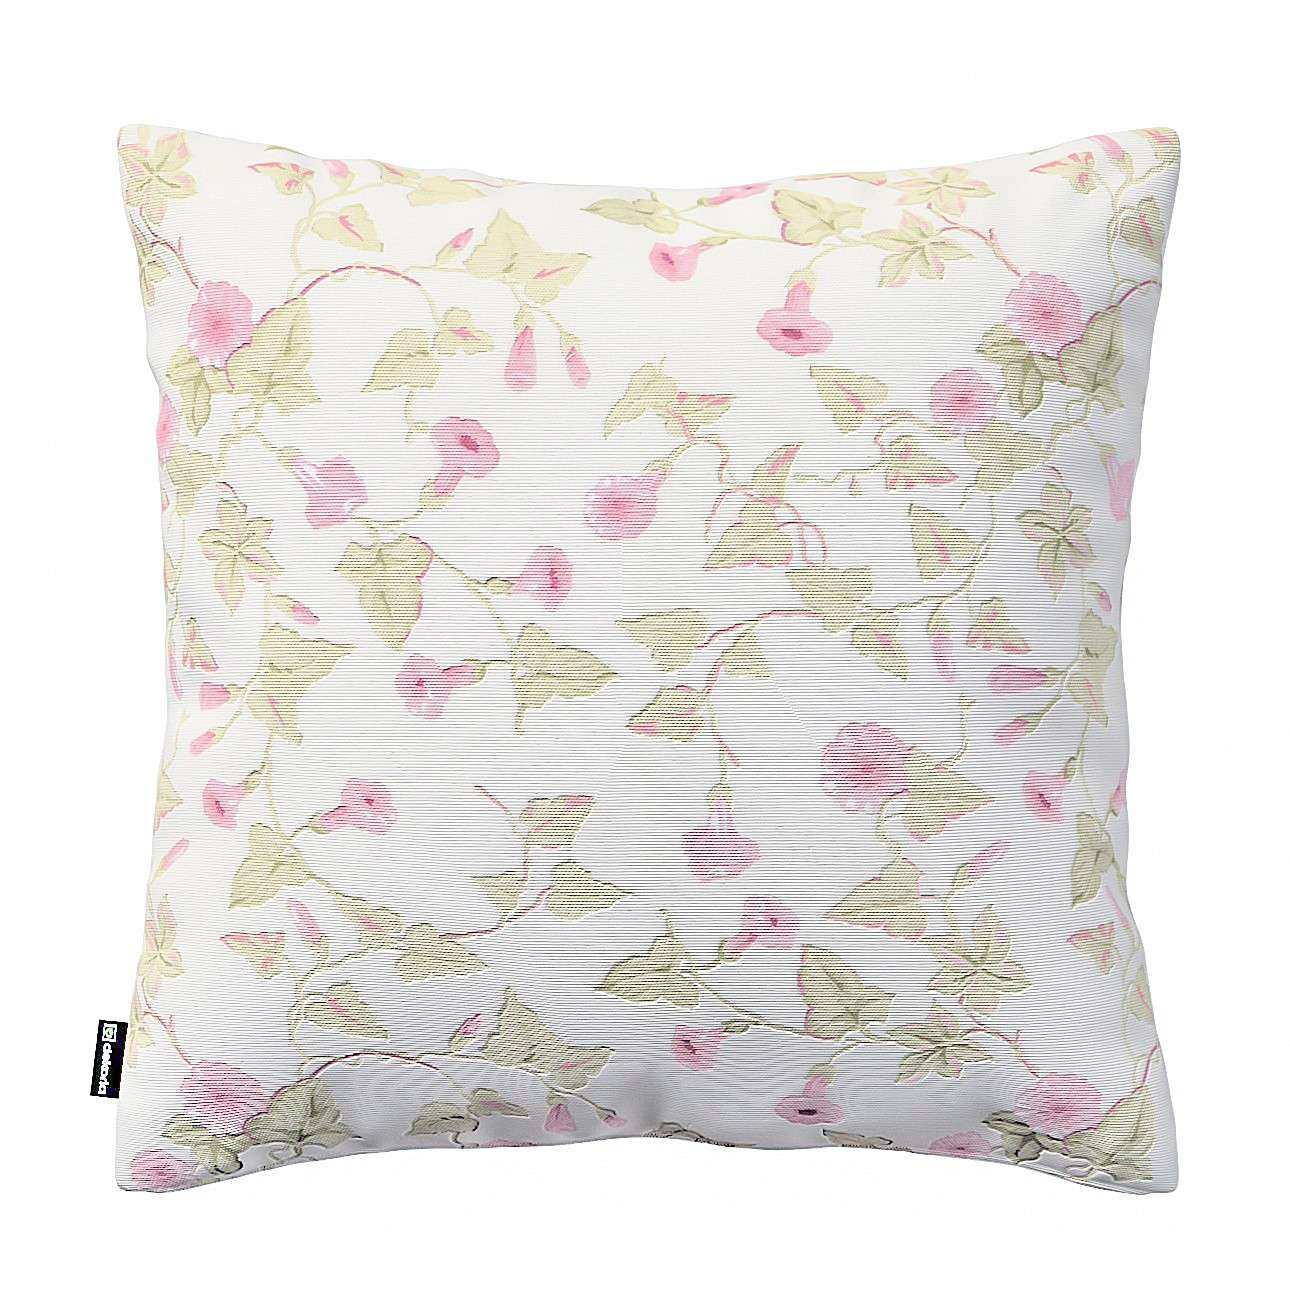 Kinga cushion cover 43 × 43 cm (17 × 17 inch) in collection Mirella, fabric: 140-41